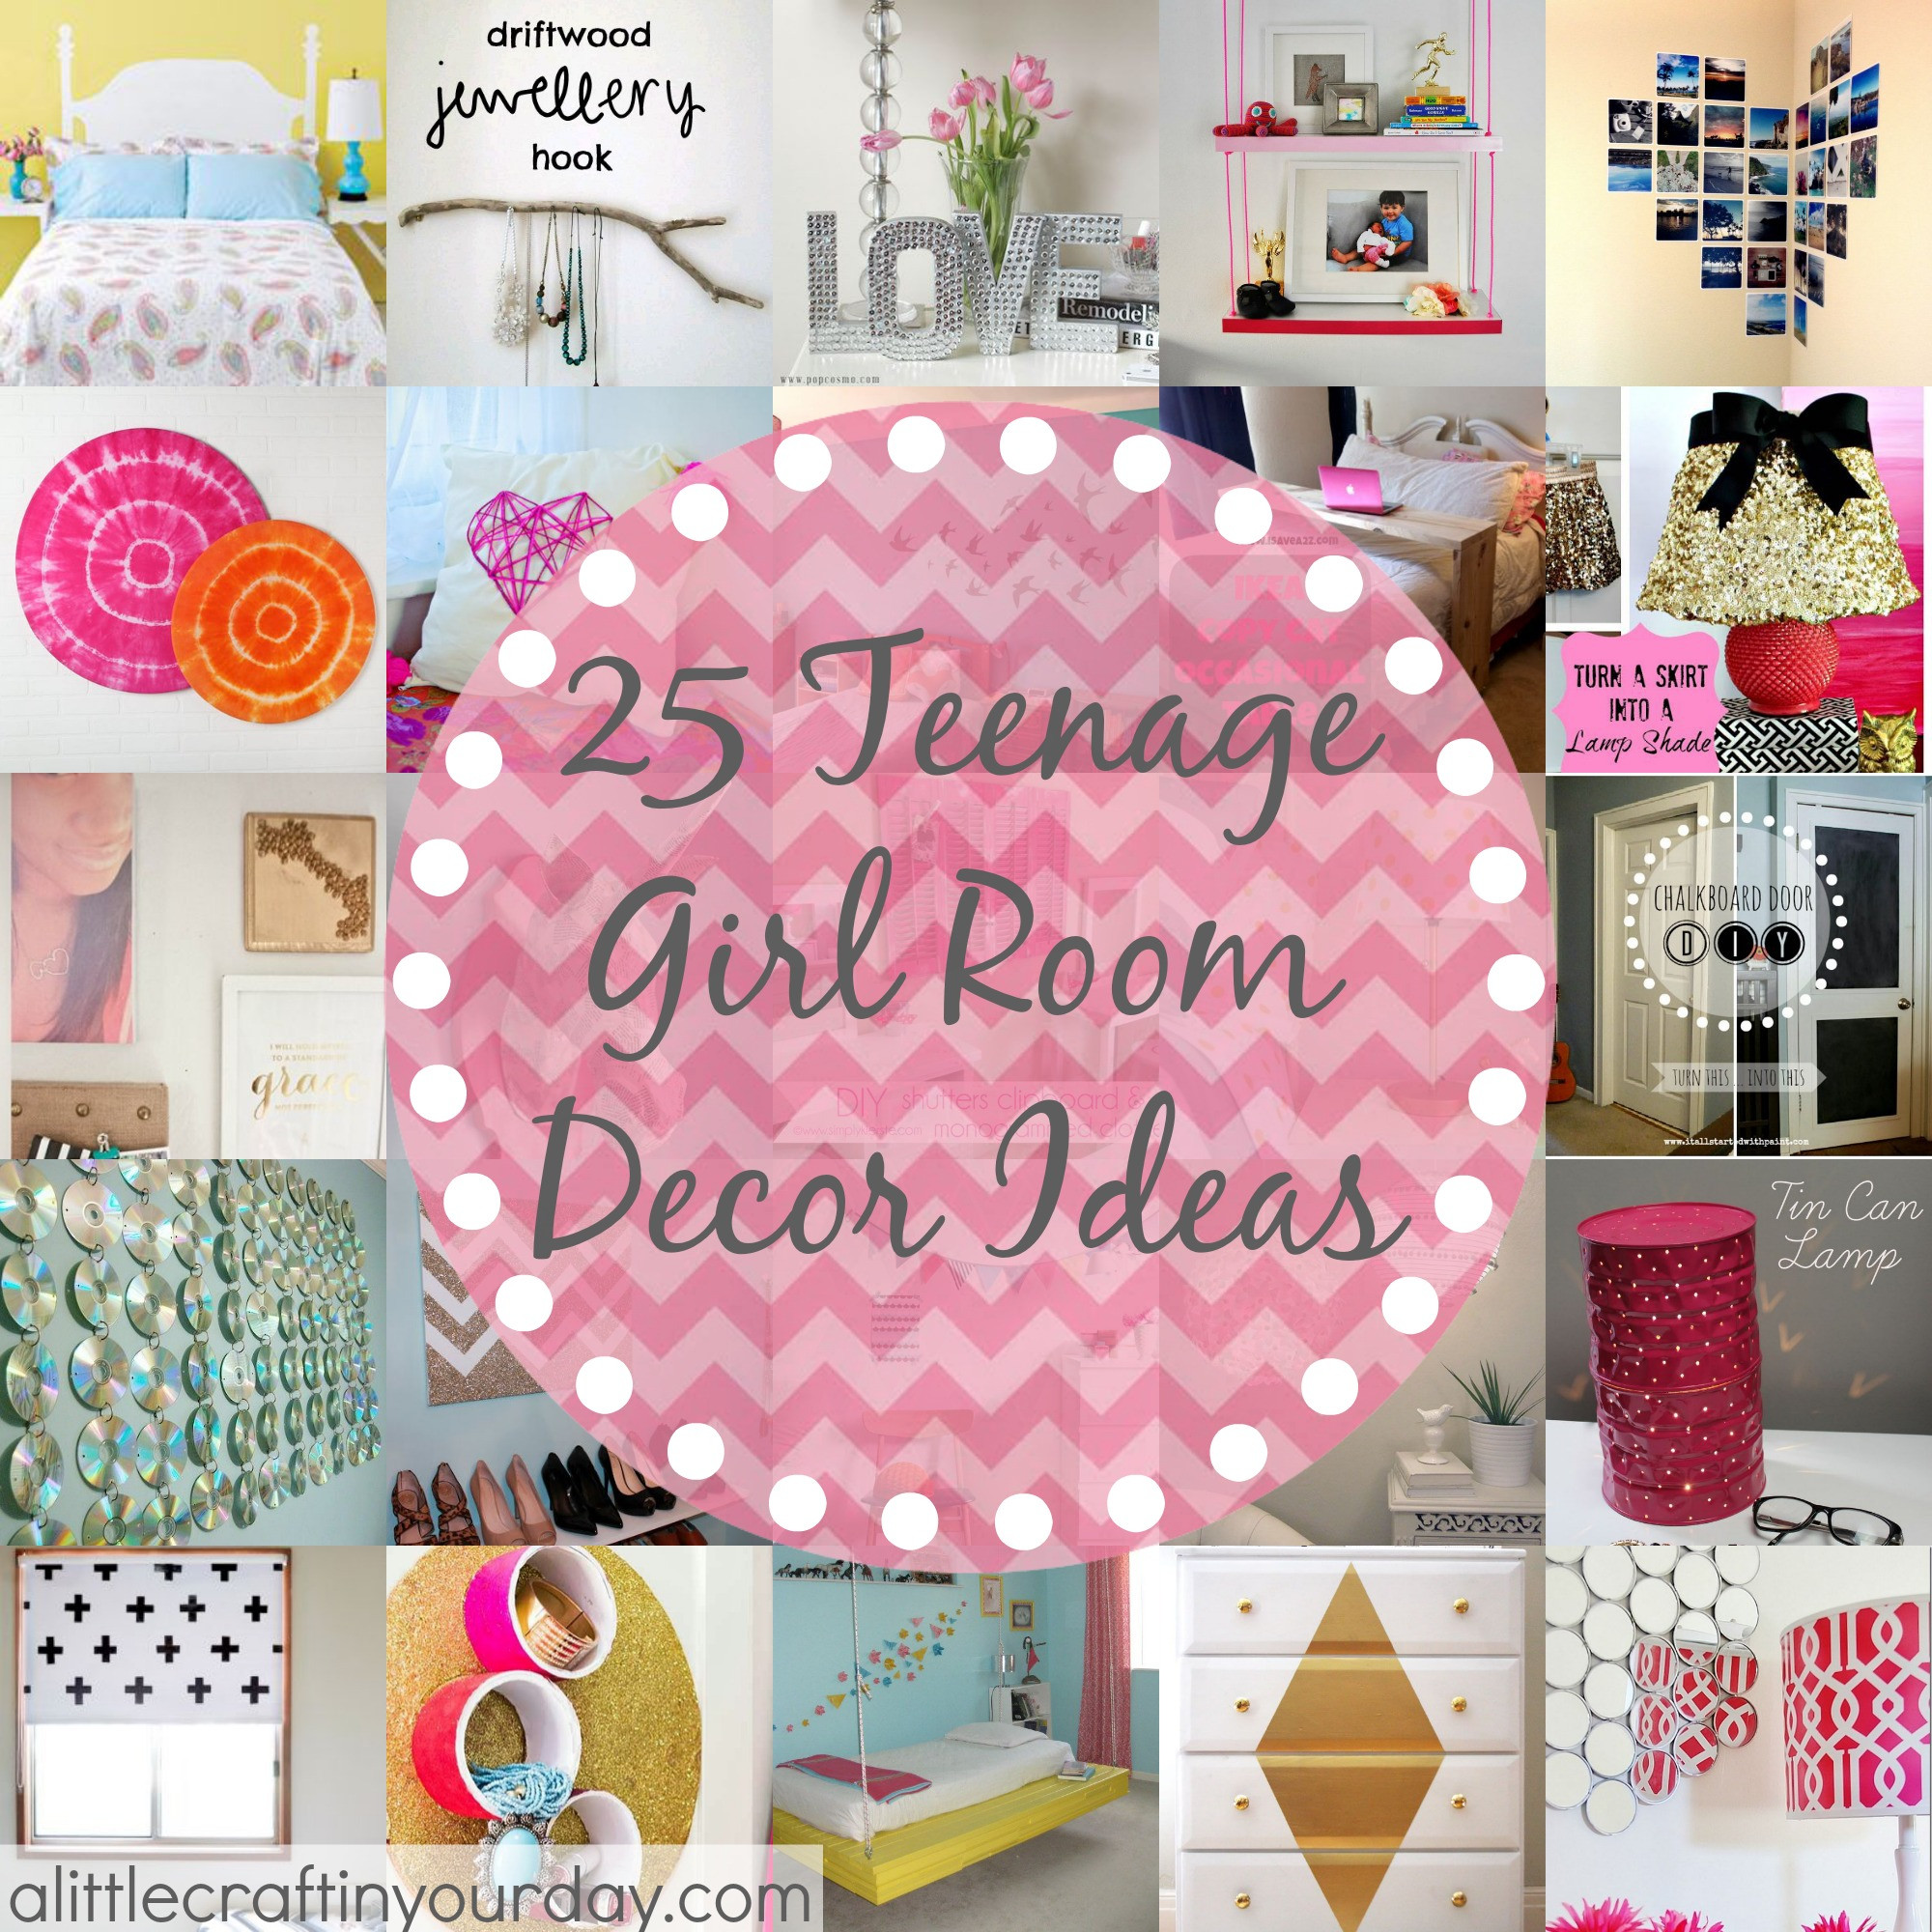 Best ideas about DIY Teenage Girl Room Decorations . Save or Pin 25 More Teenage Girl Room Decor Ideas A Little Craft In Now.